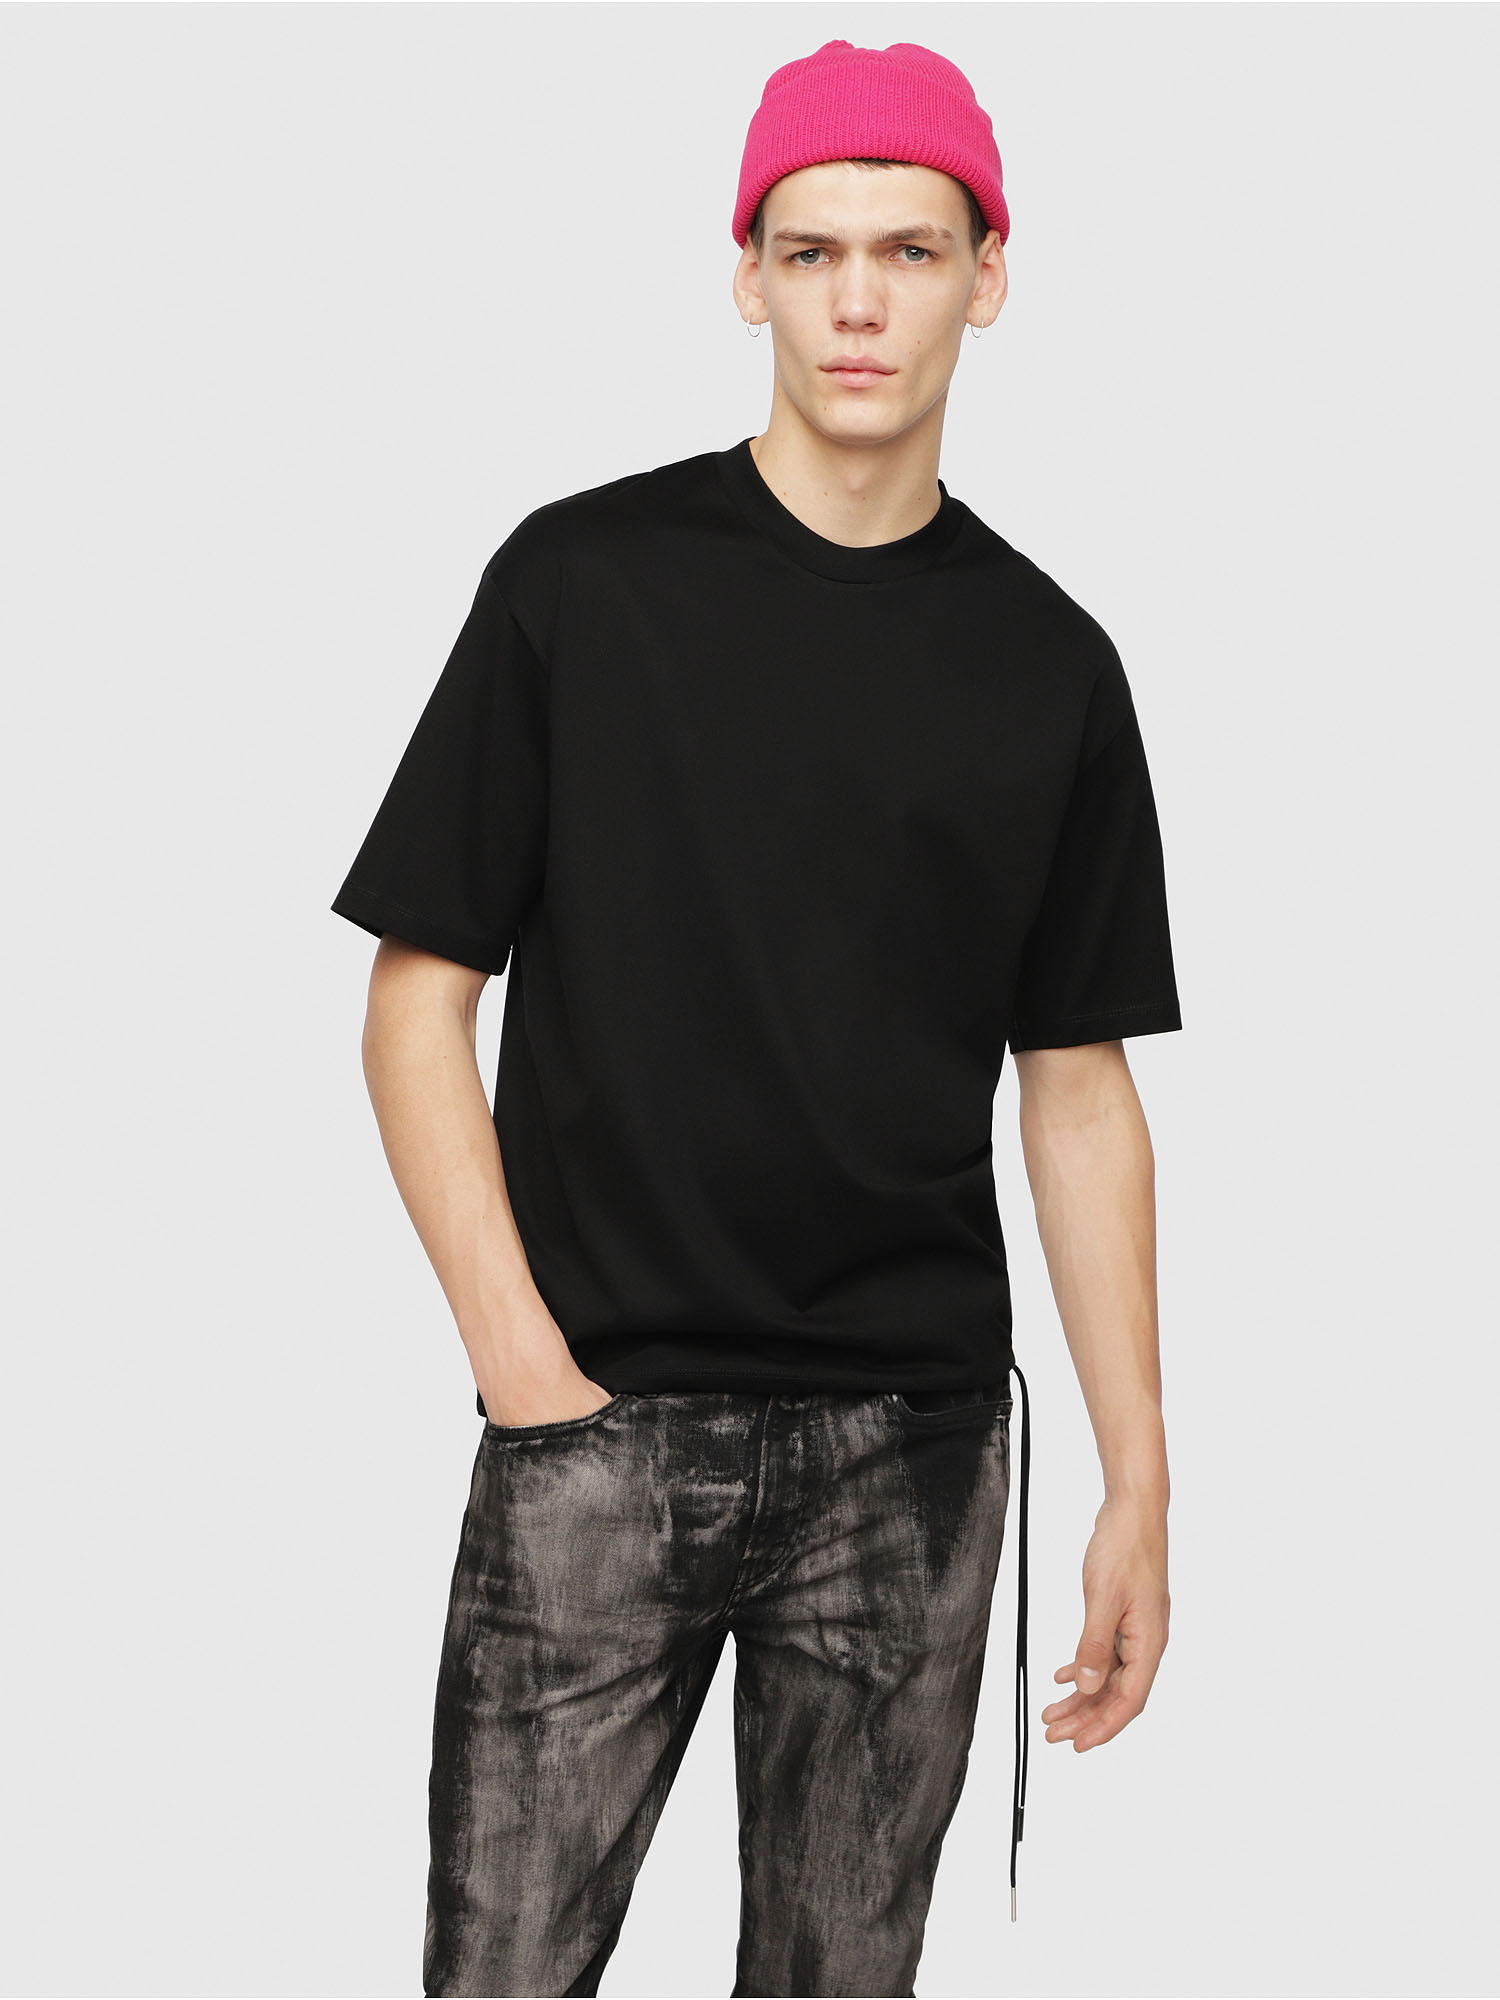 Diesel - T-PLAZA-A,  - T-Shirts - Image 1